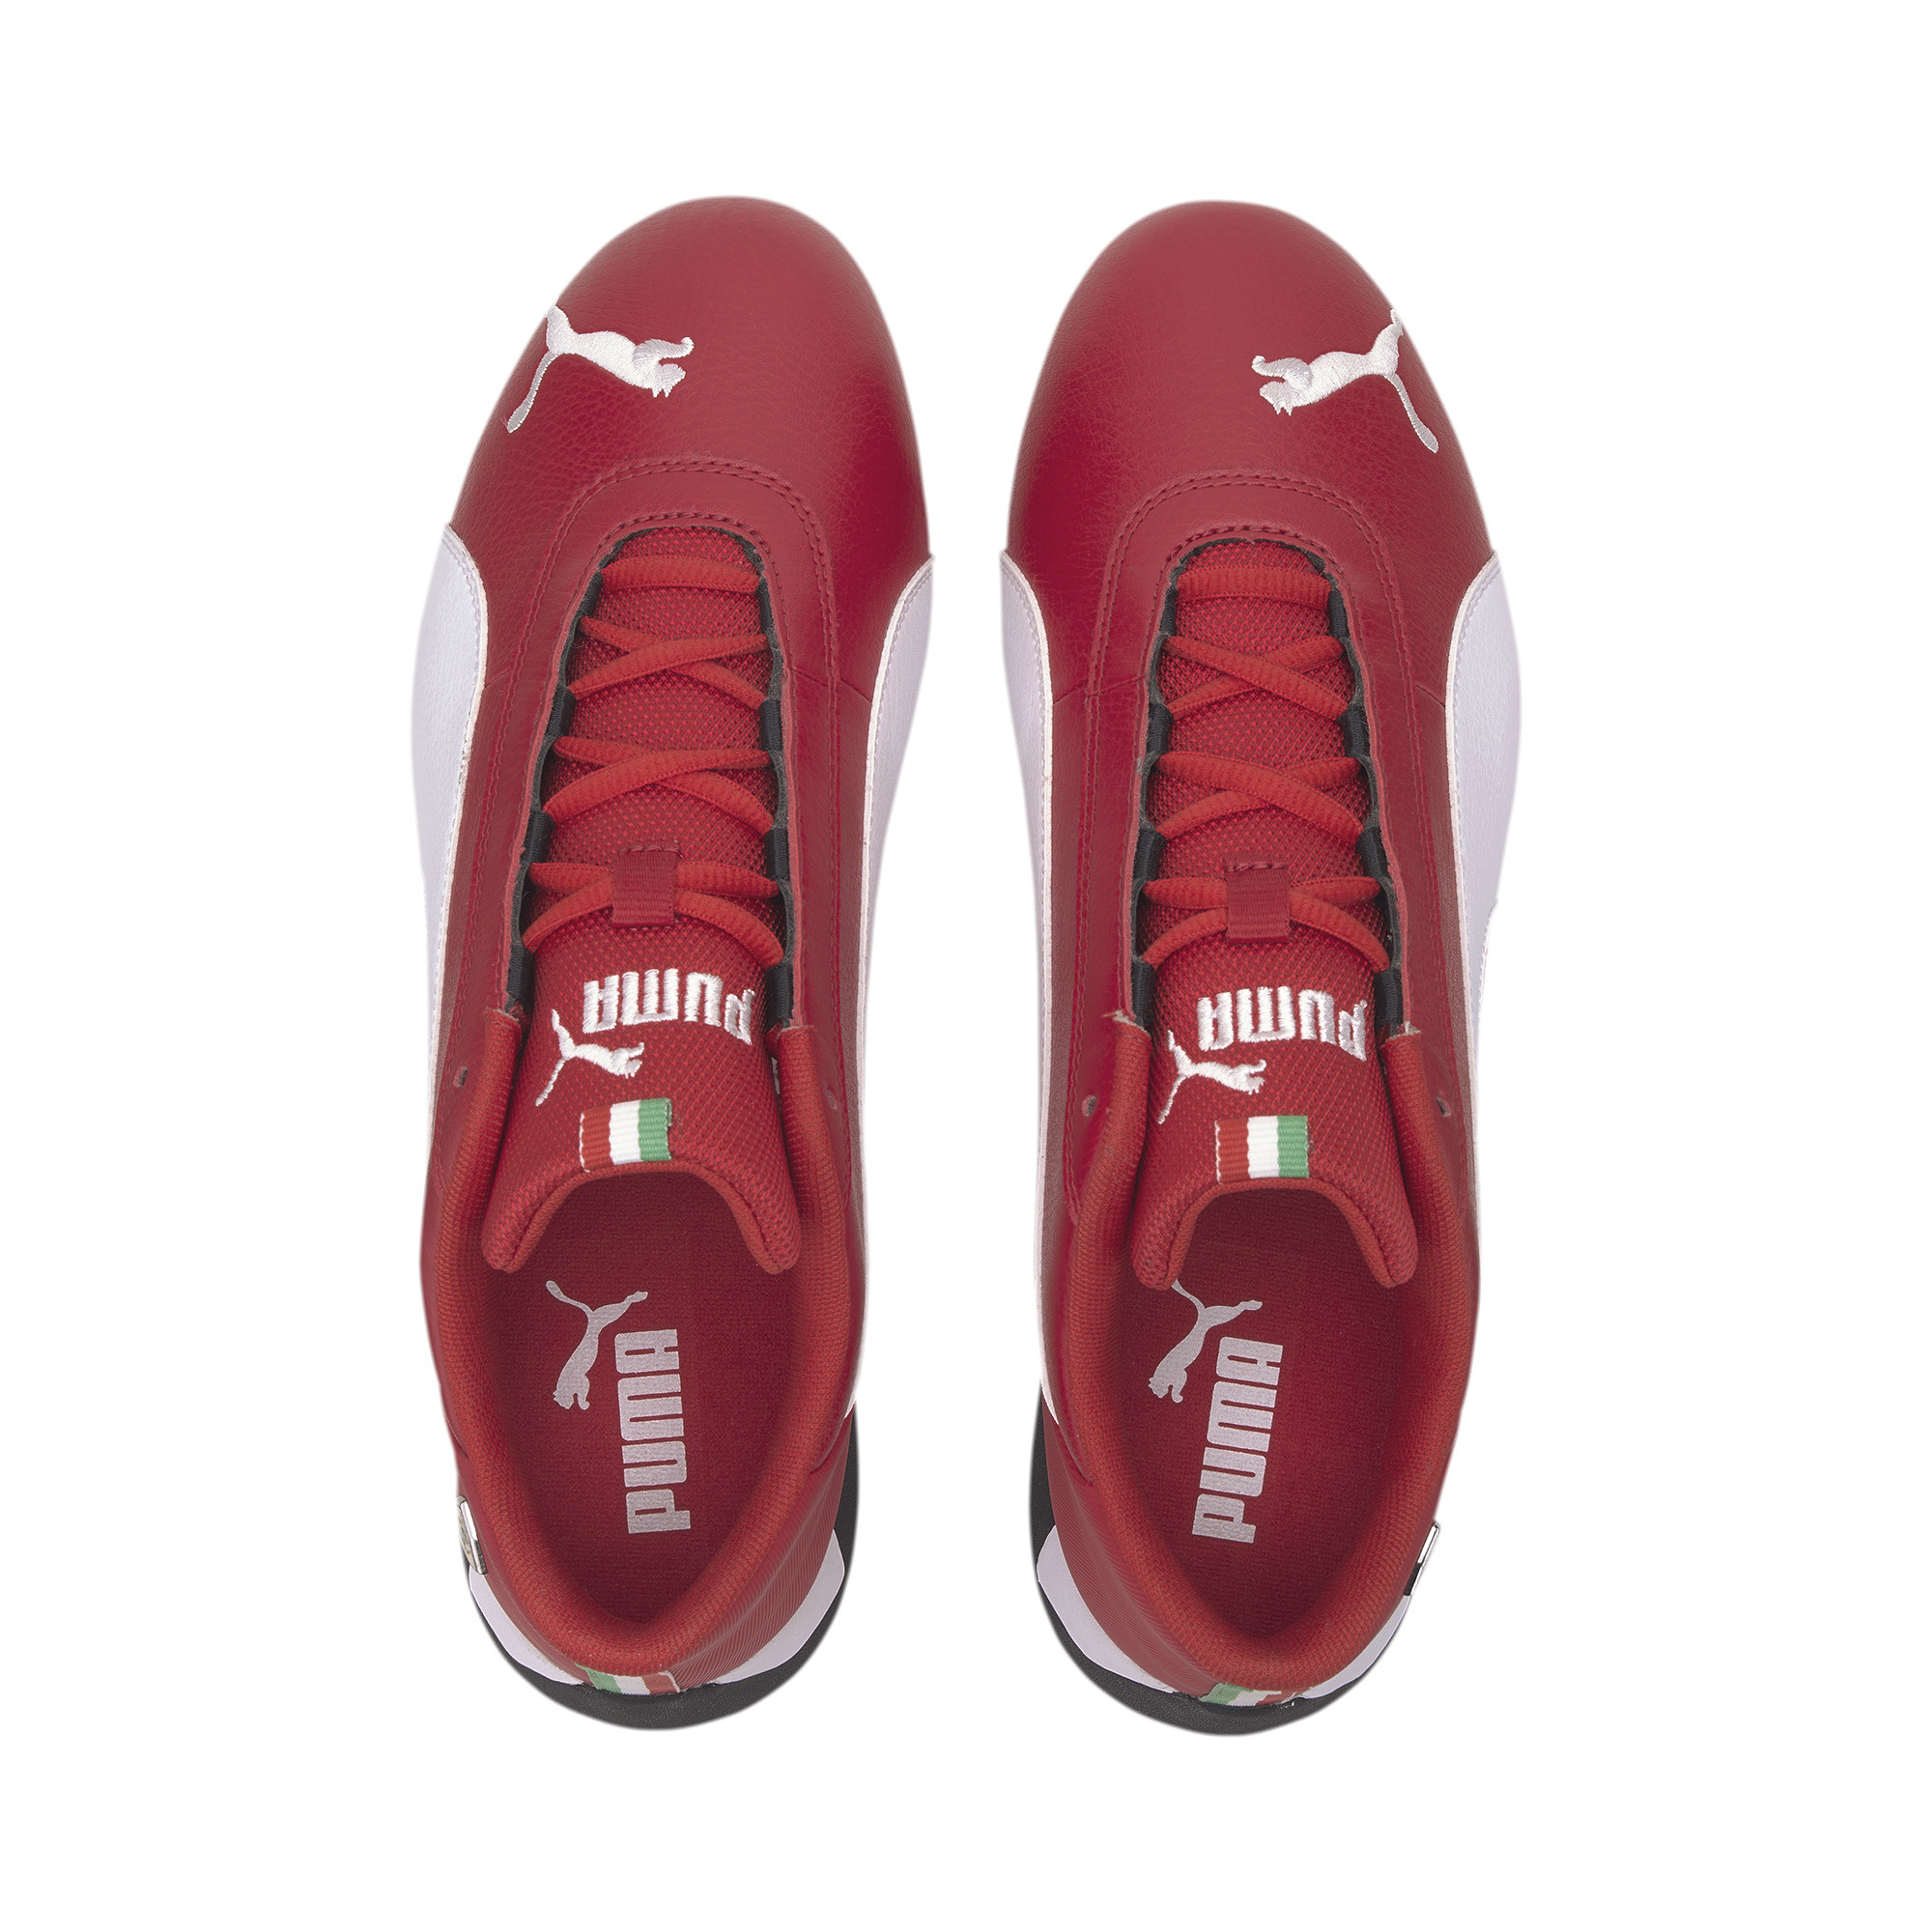 PUMA-Men-039-s-Scuderia-Ferrari-R-Cat-Motorsport-Shoes thumbnail 8